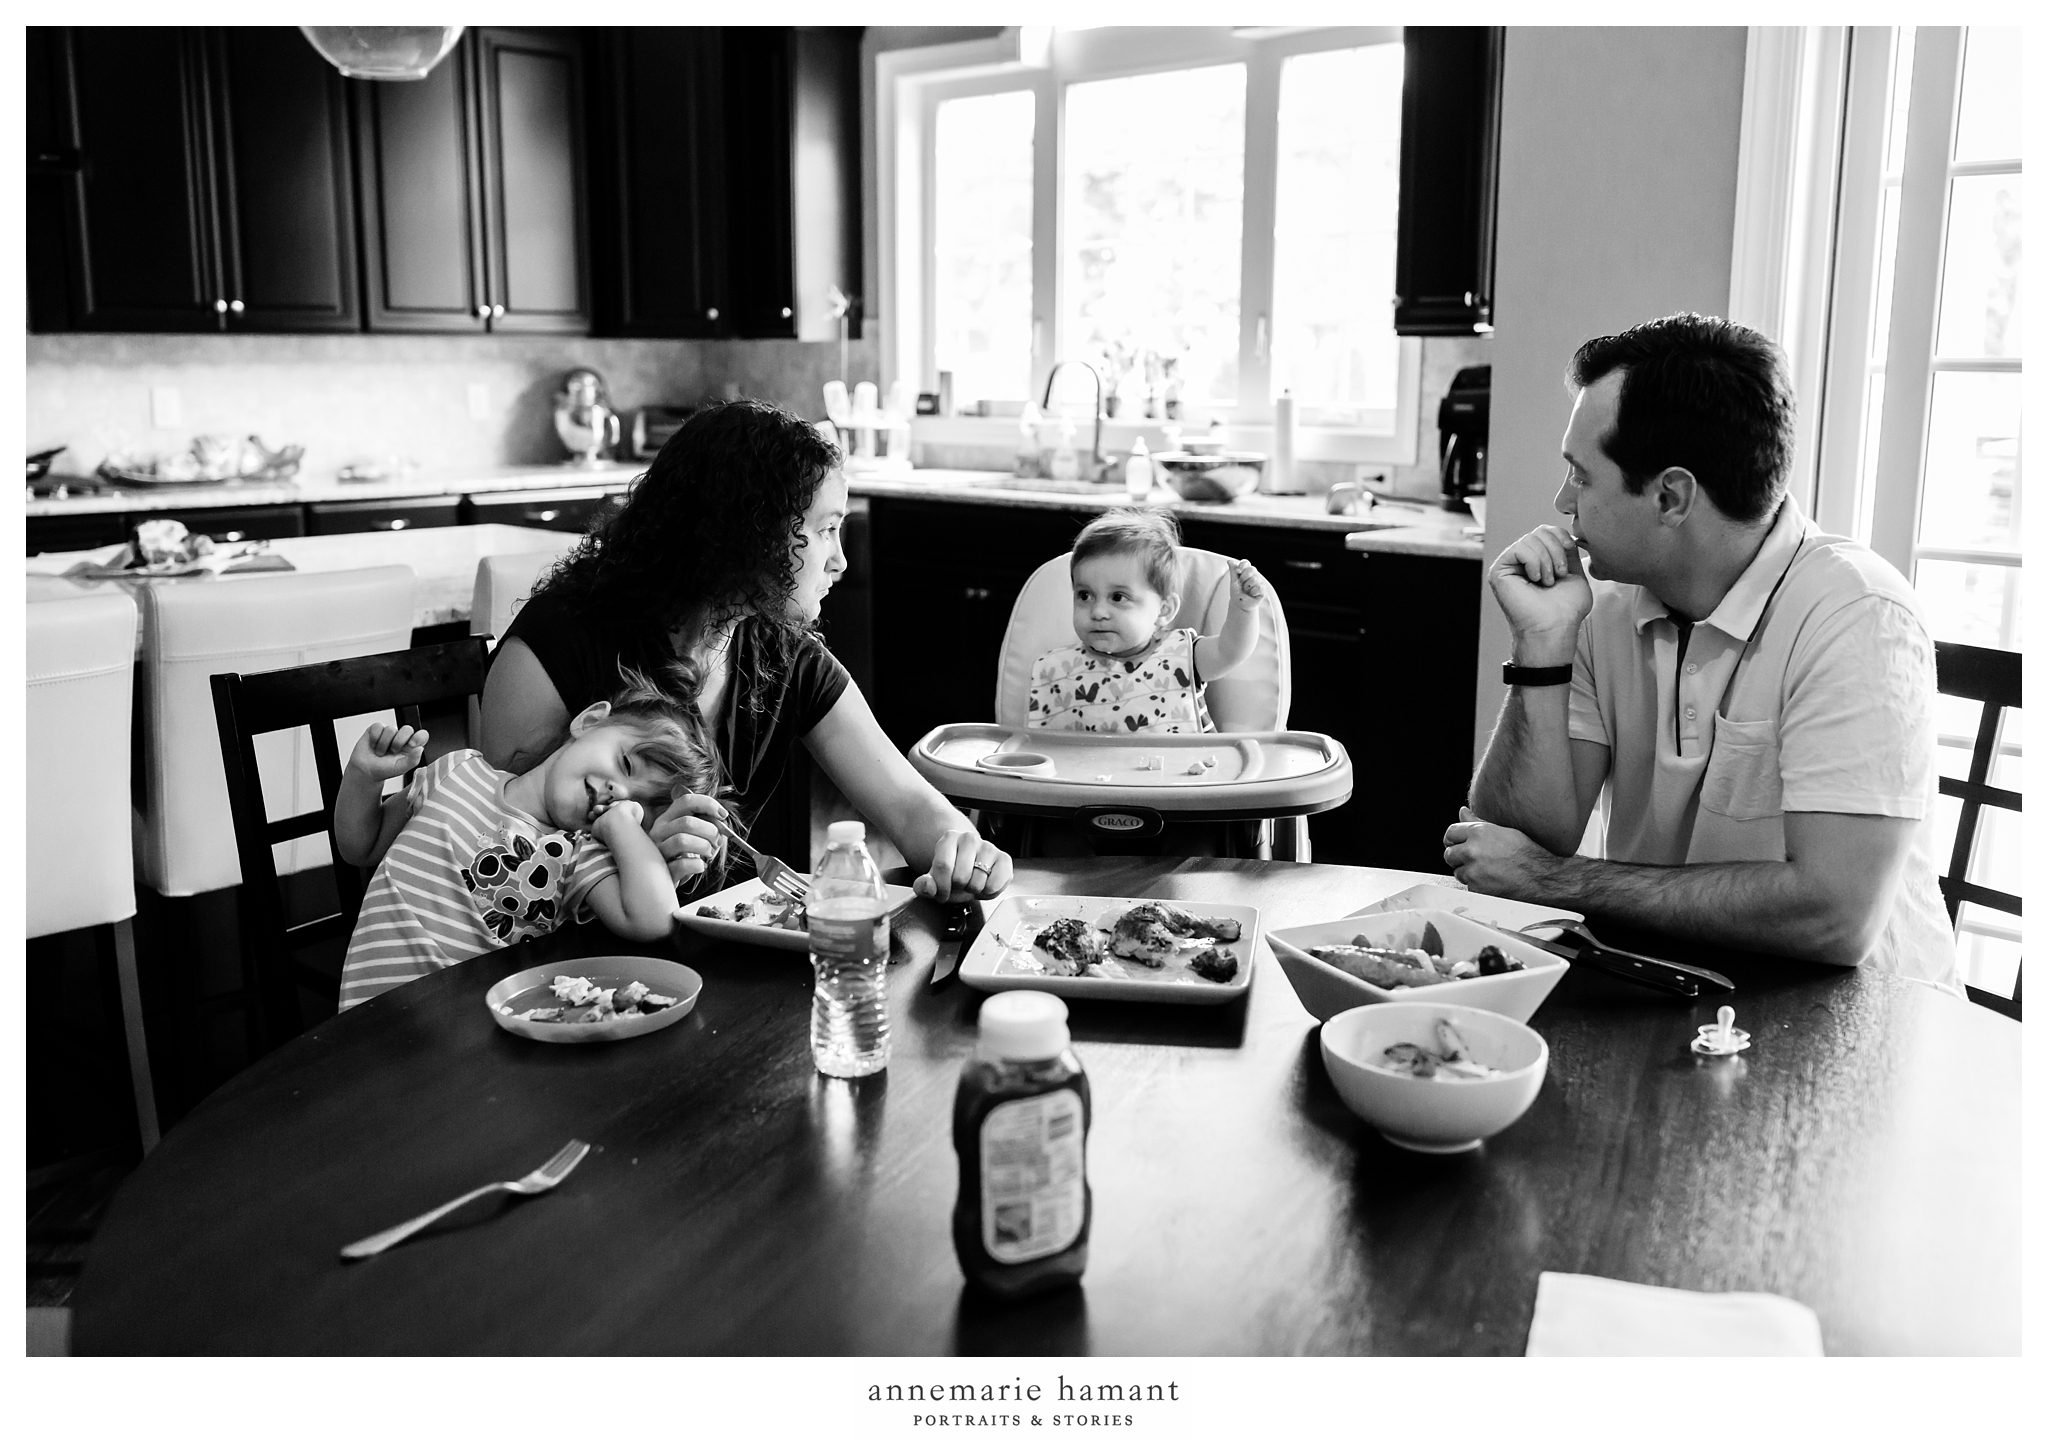 https://www.annemariehamant.com/blog/montgomery-county-pa-life-story-family-session-annemarie-hamant-portraits-stories-documentary-photographer